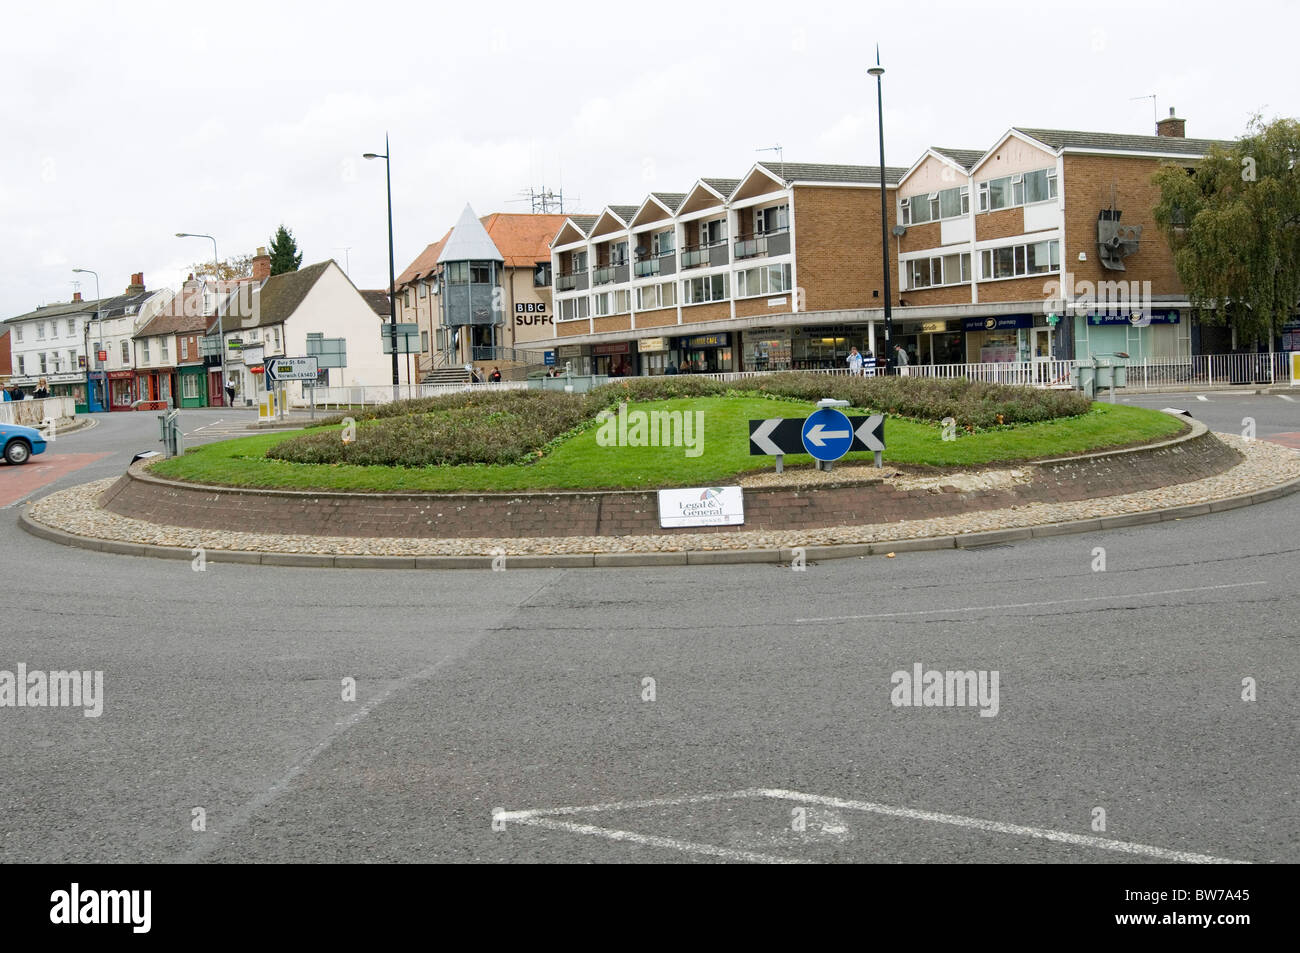 roundabouts roundabout traffic circles roads road junction junctions uk town planning planners planner - Stock Image